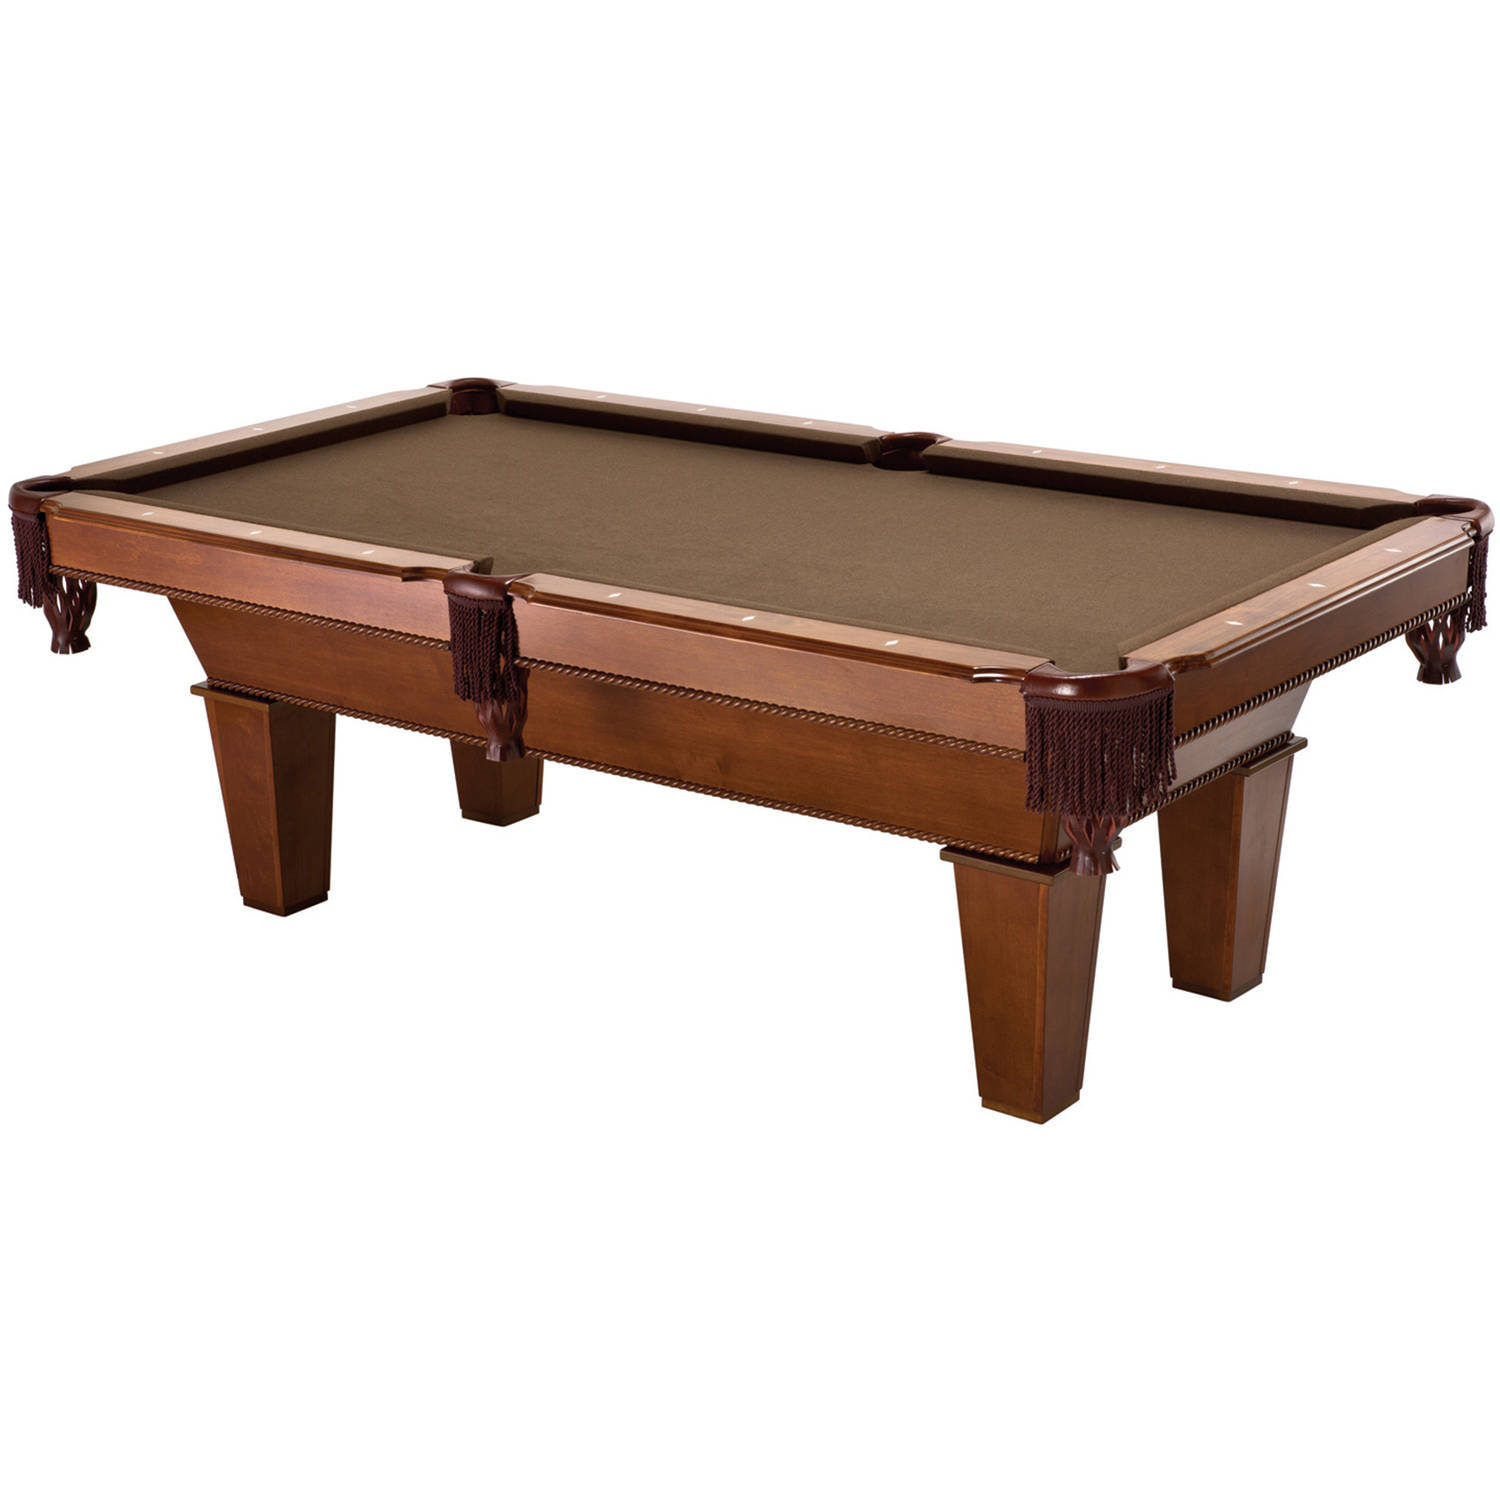 Fat Cat Frisco Pool Table Walmartcom - Pool table assembly service near me